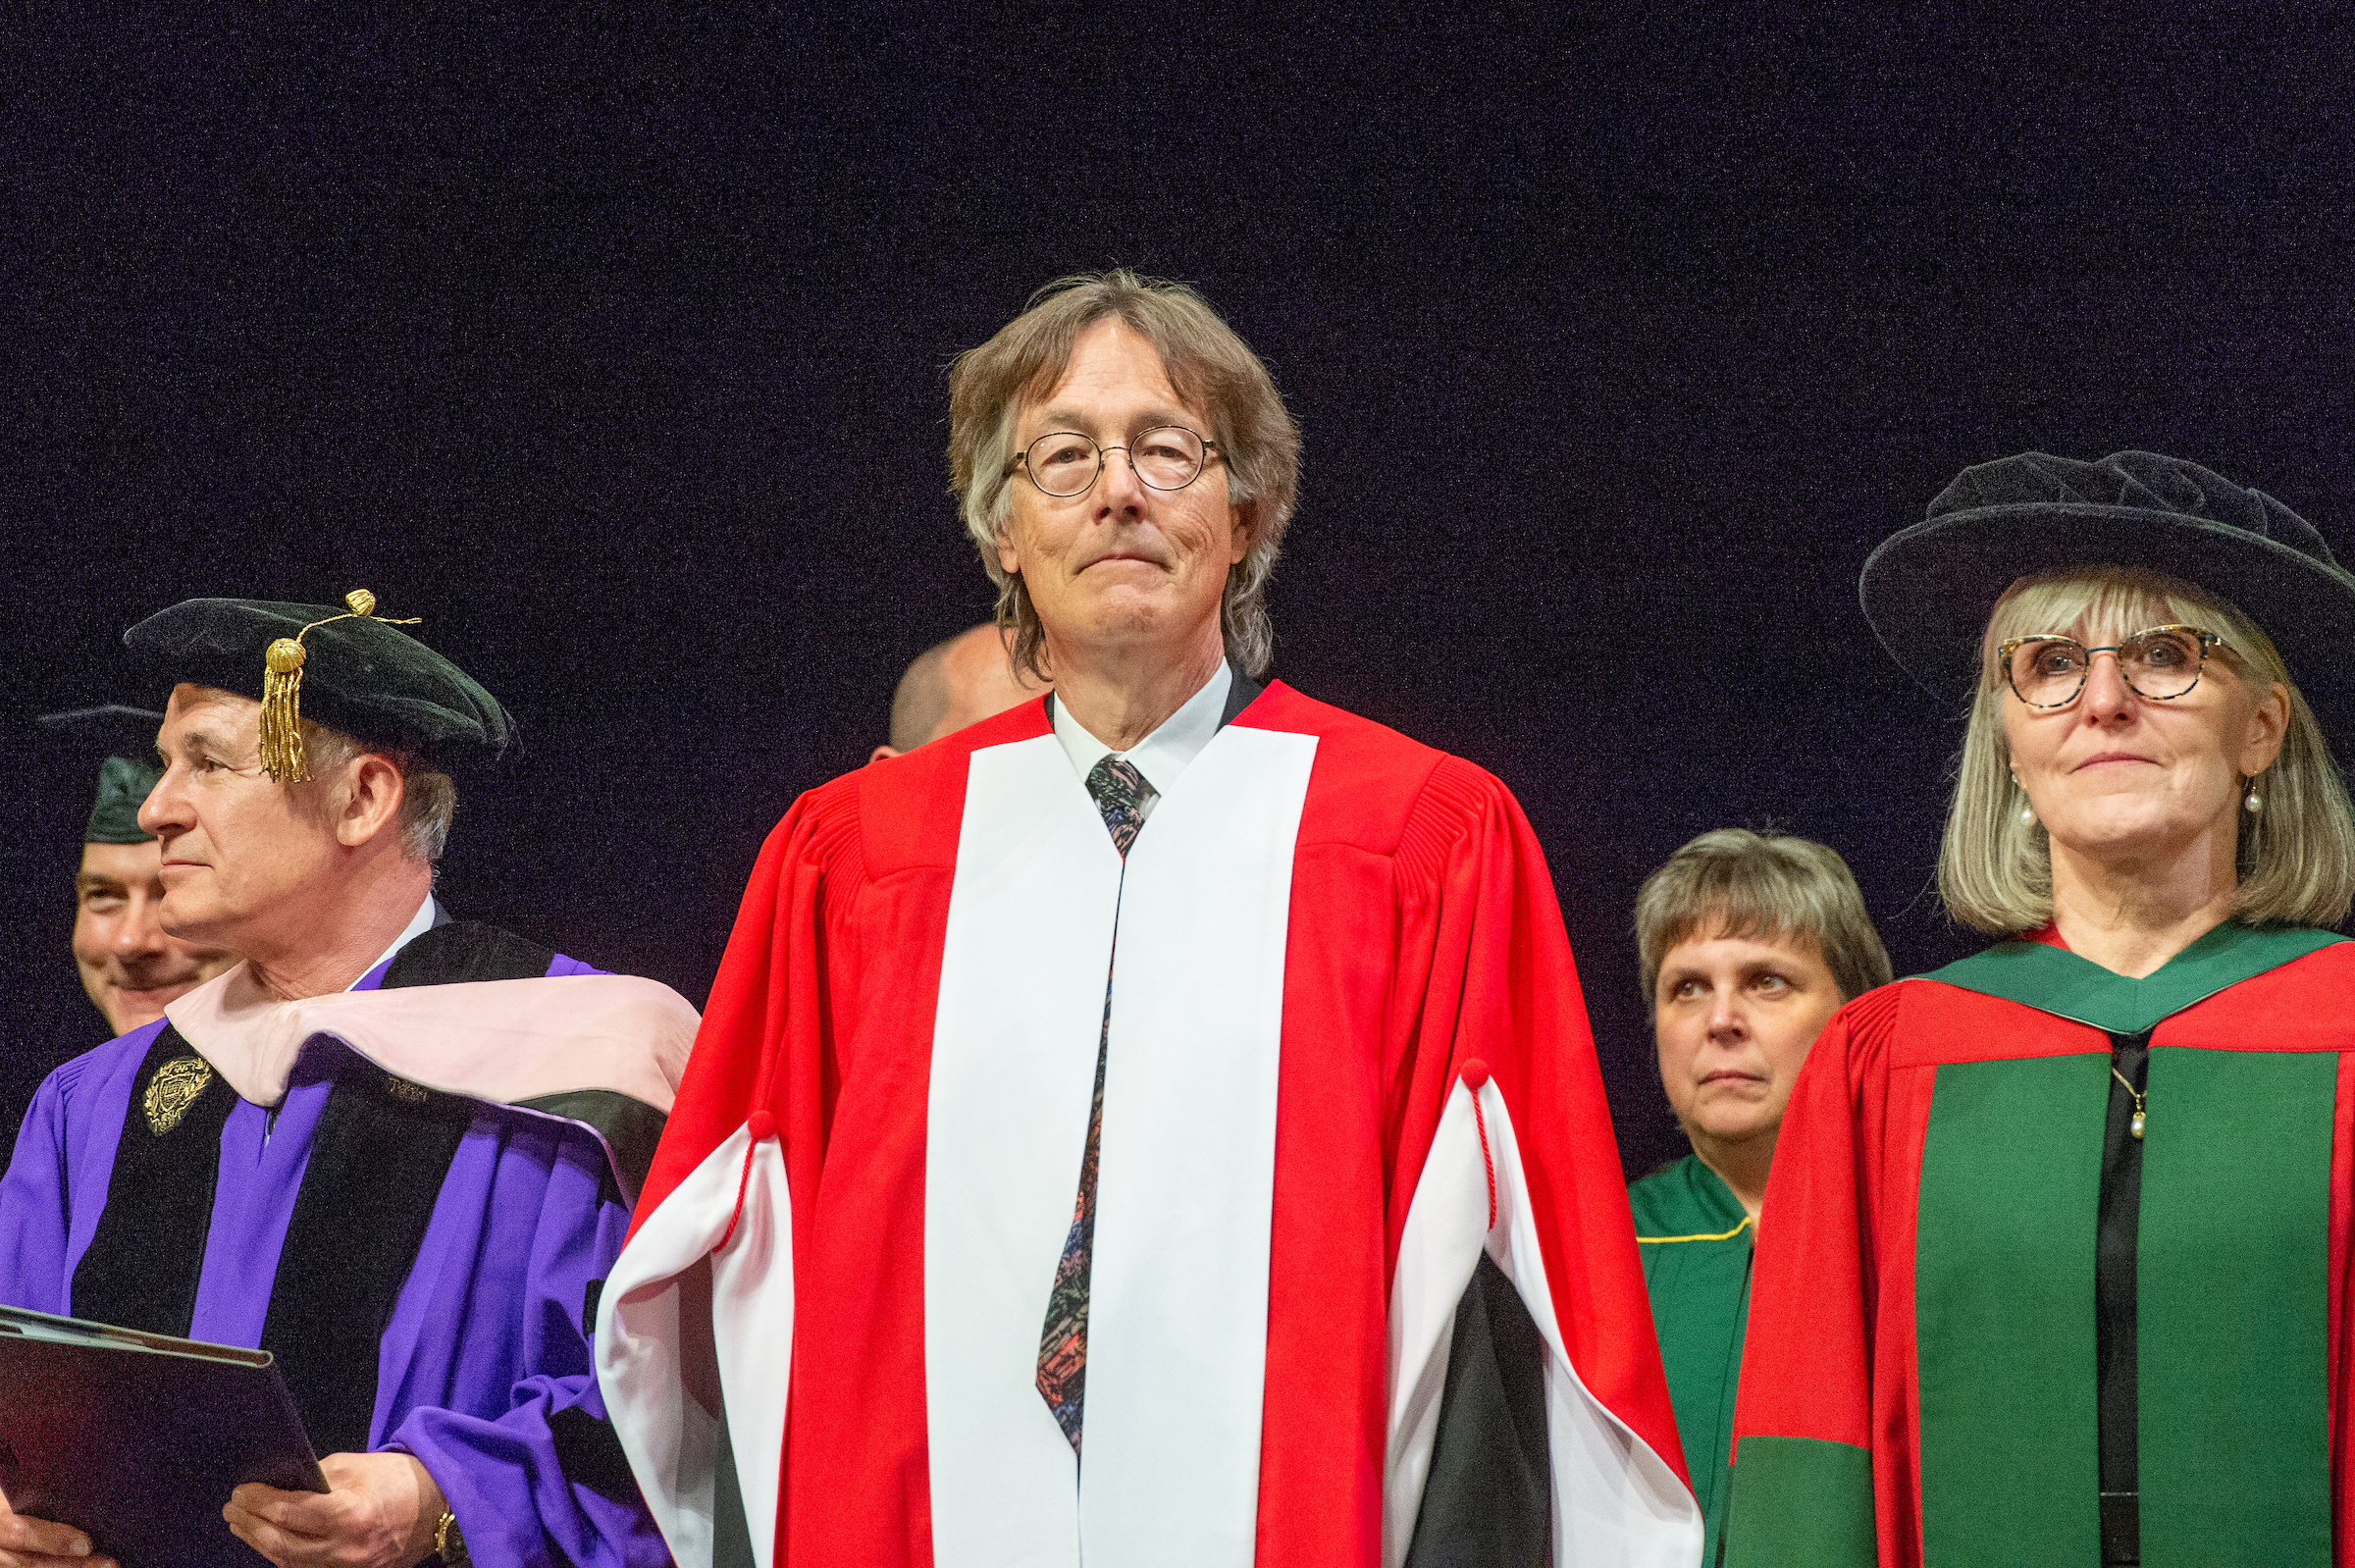 Allan Gordon Bell, honorary doctor of letters